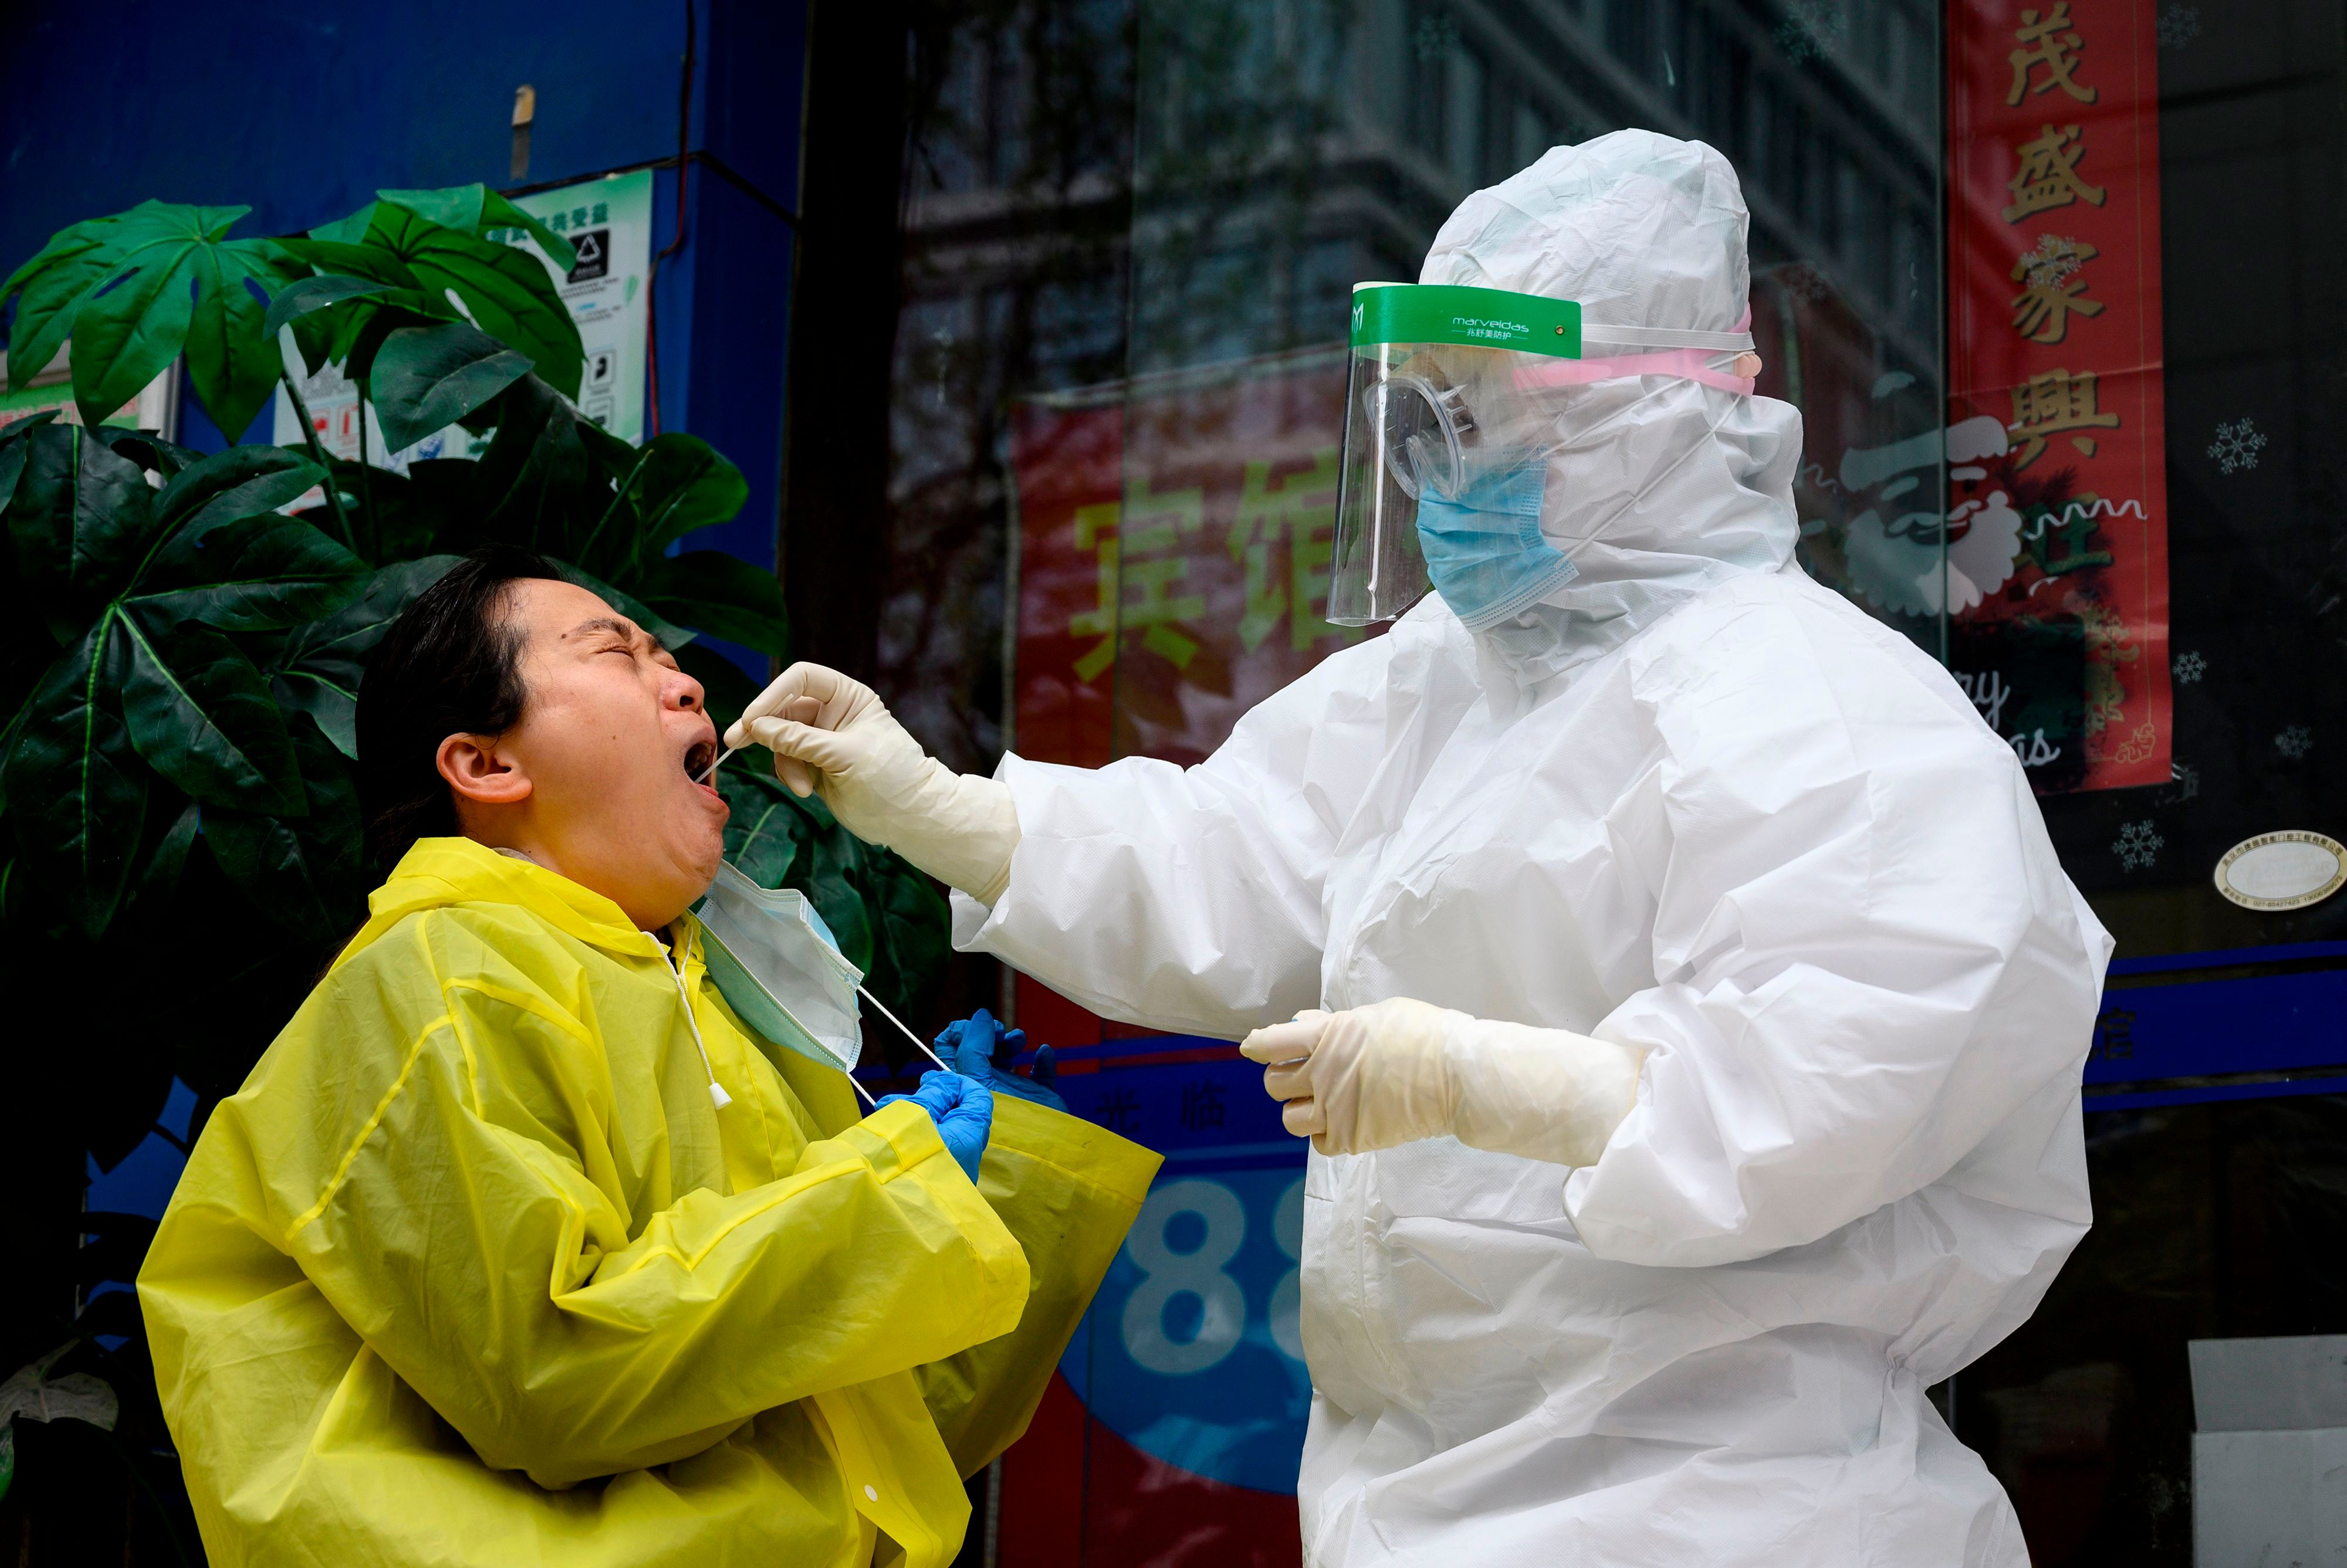 A medical worker wearing a hazmat suit swabs a woman to check if she has coronavirus in Wuhan, China's central Hubei province on March 28